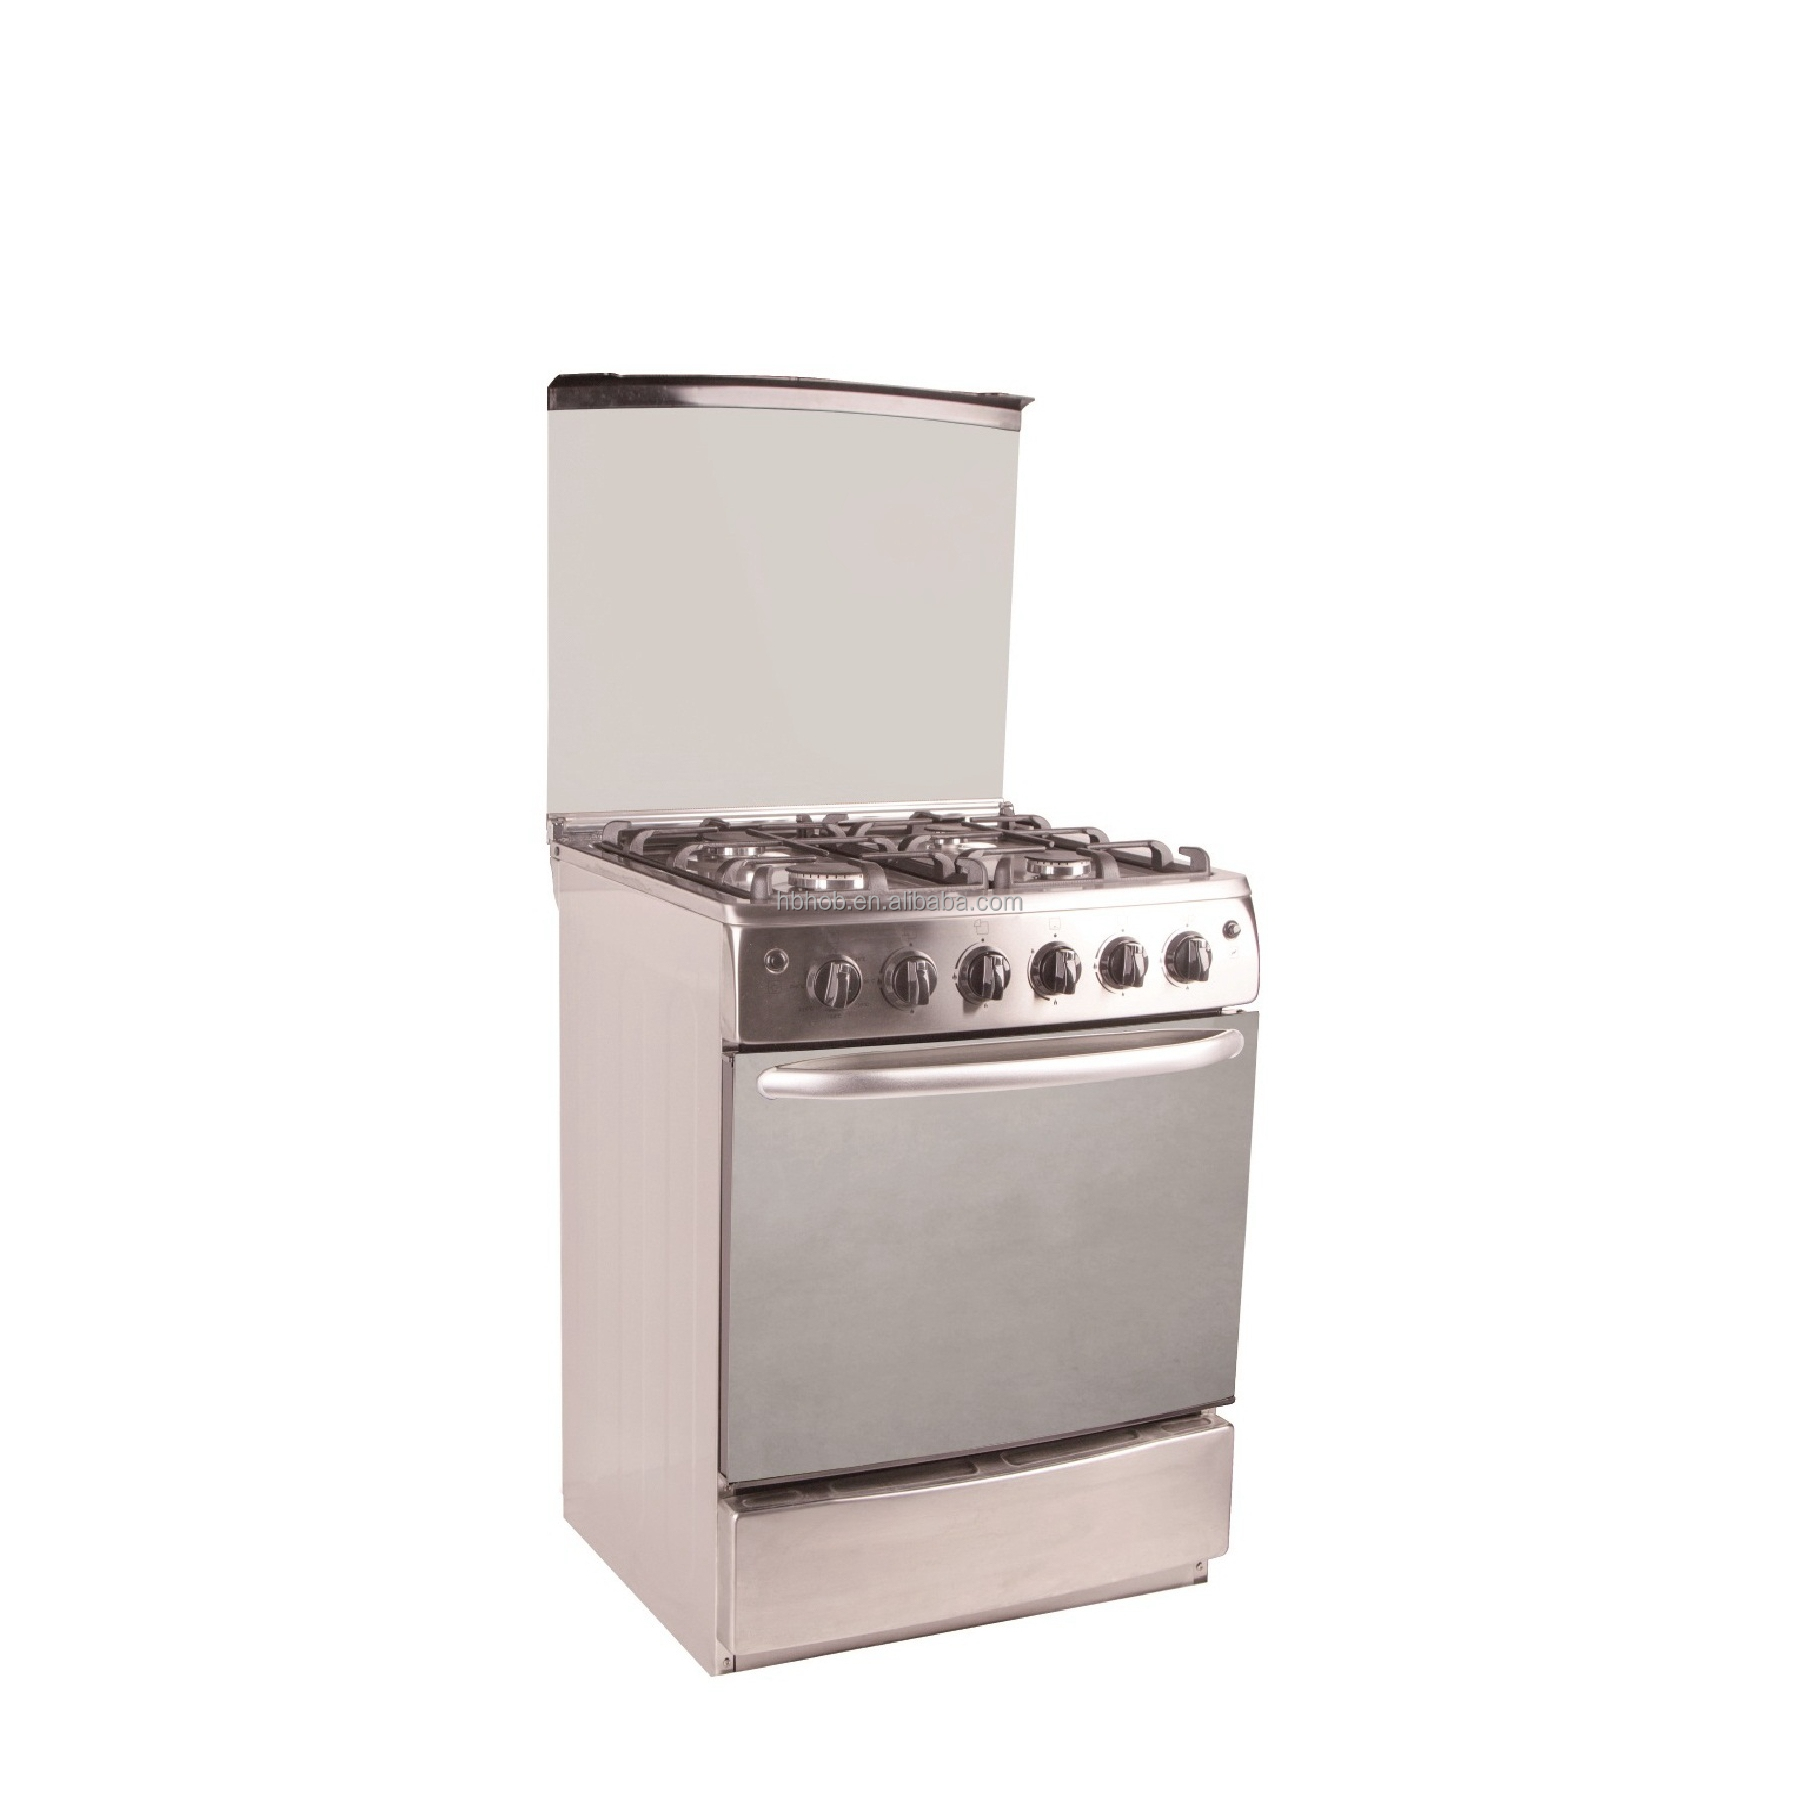 universal 4 burner gas cooker with oven gas stove with grill and oven